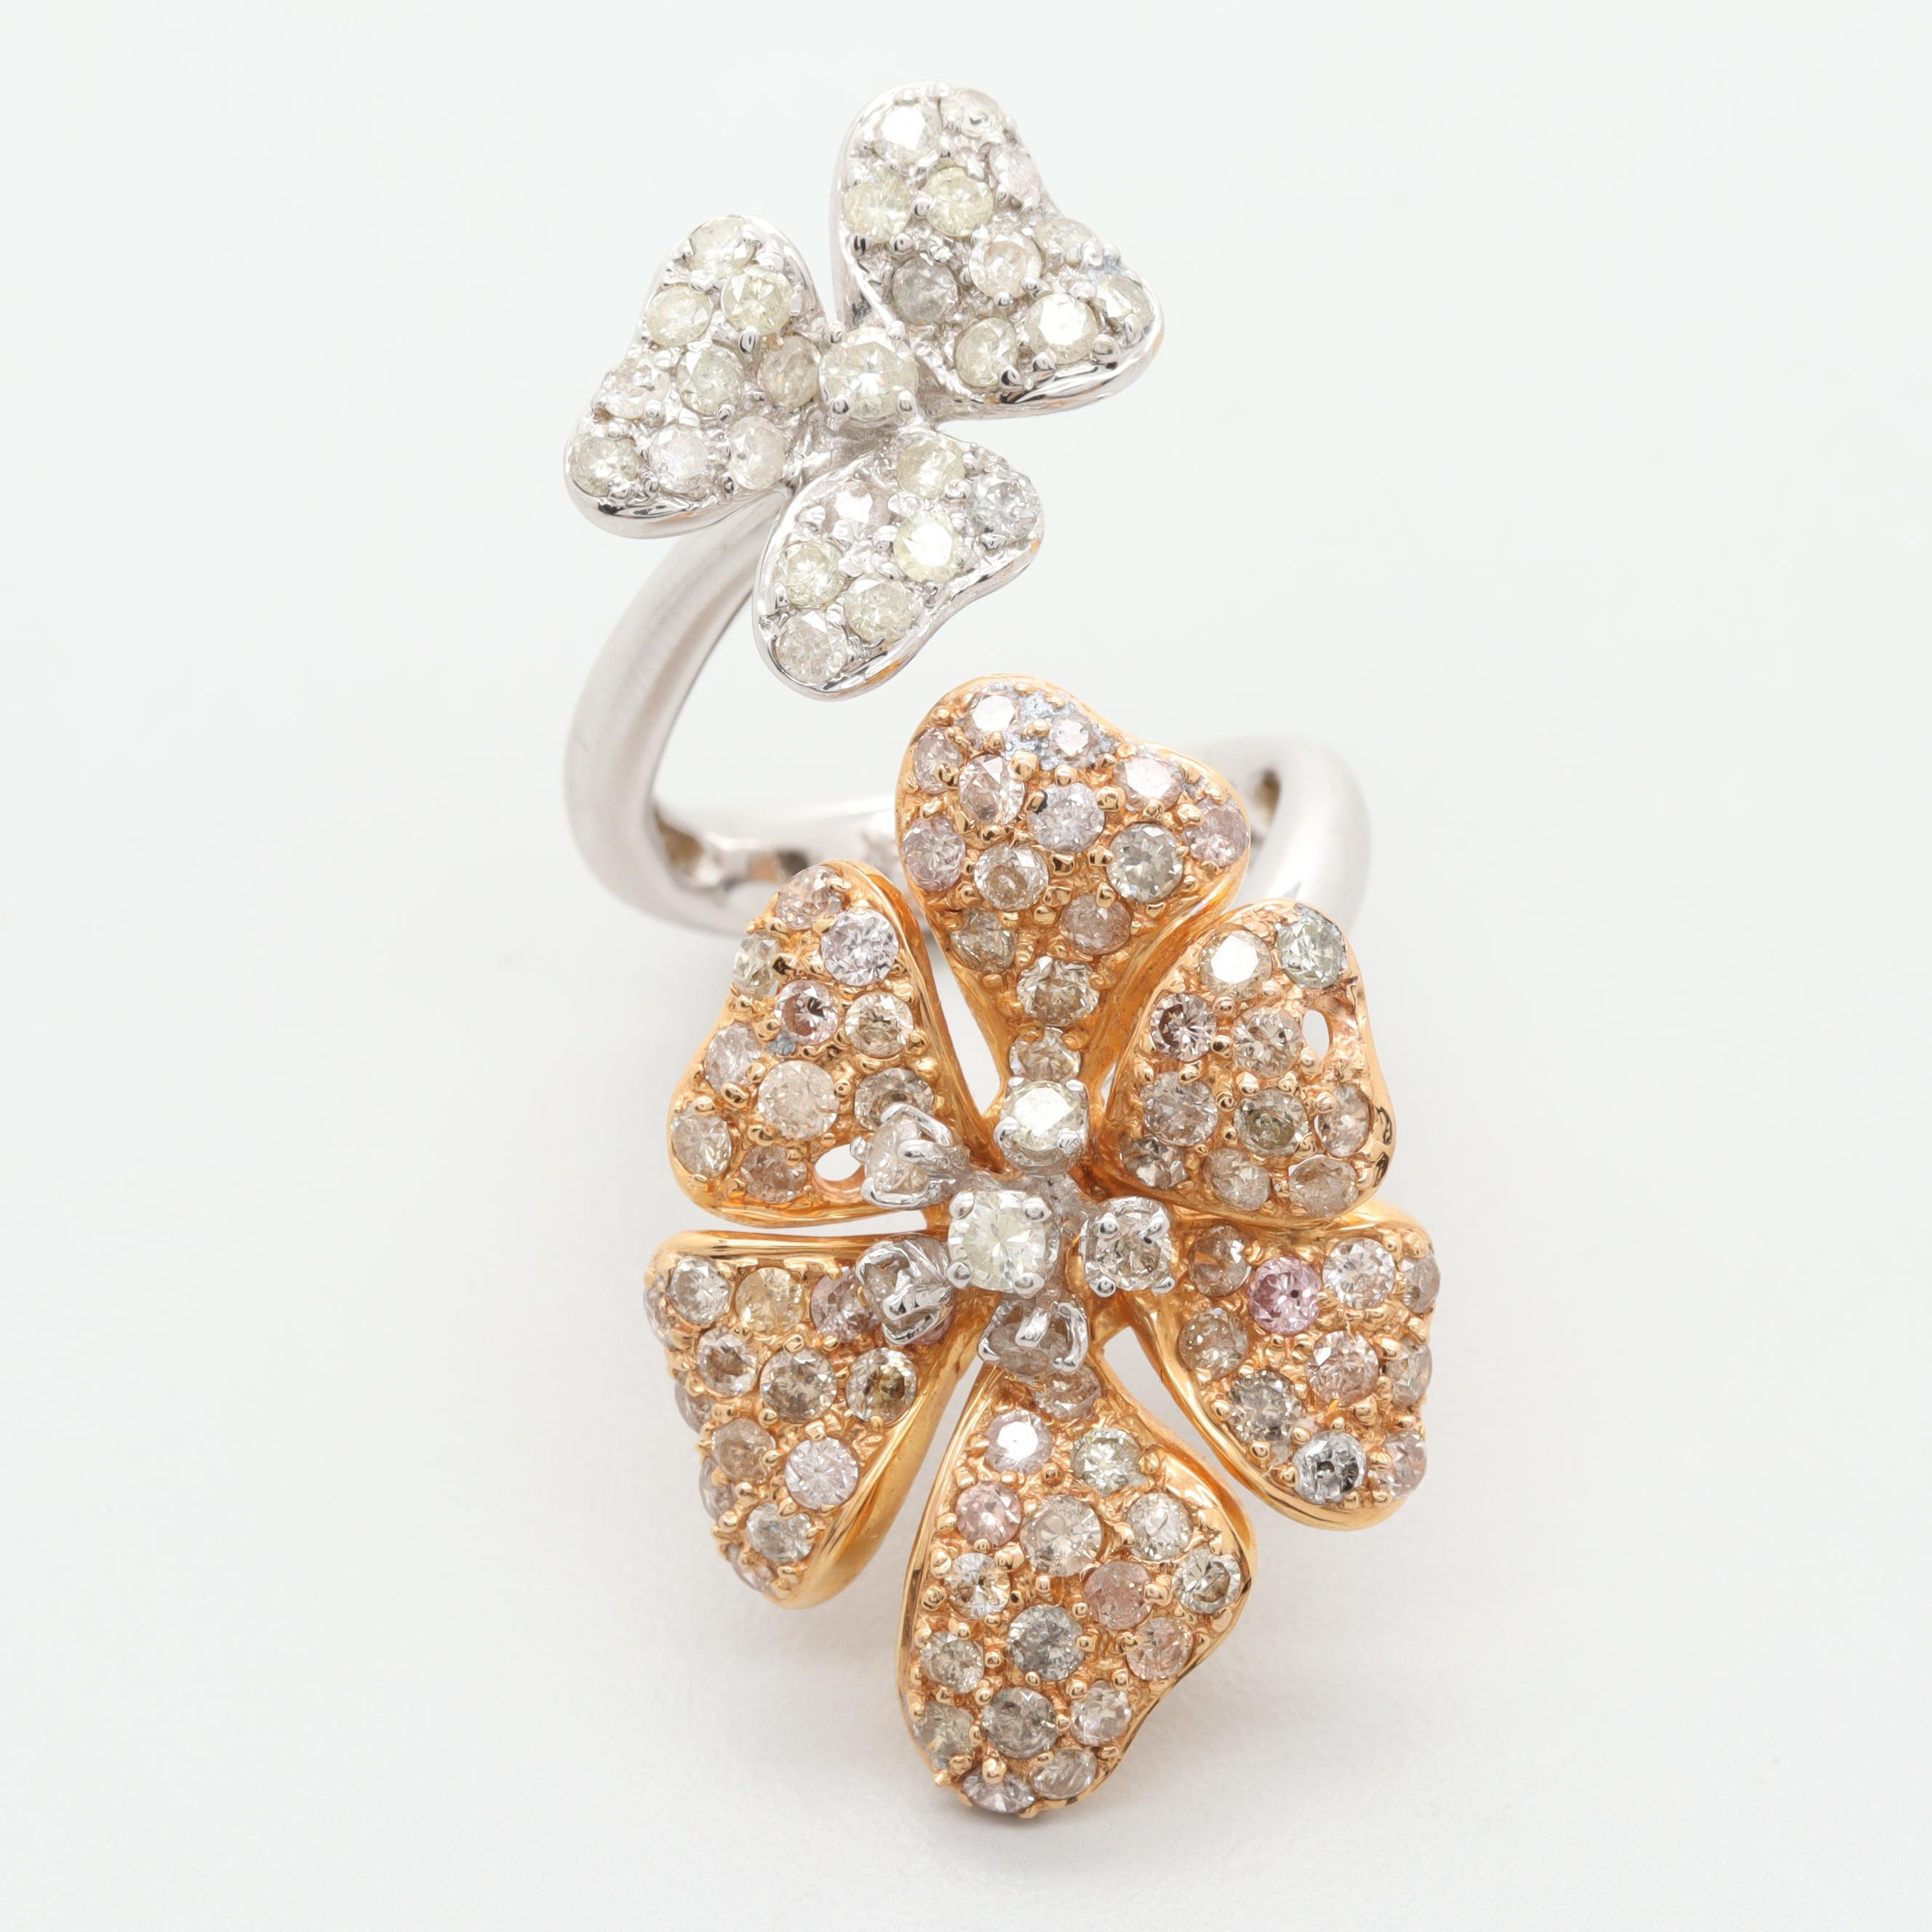 18K Yellow and White Gold 2.82 CTW Diamond Flower Ring